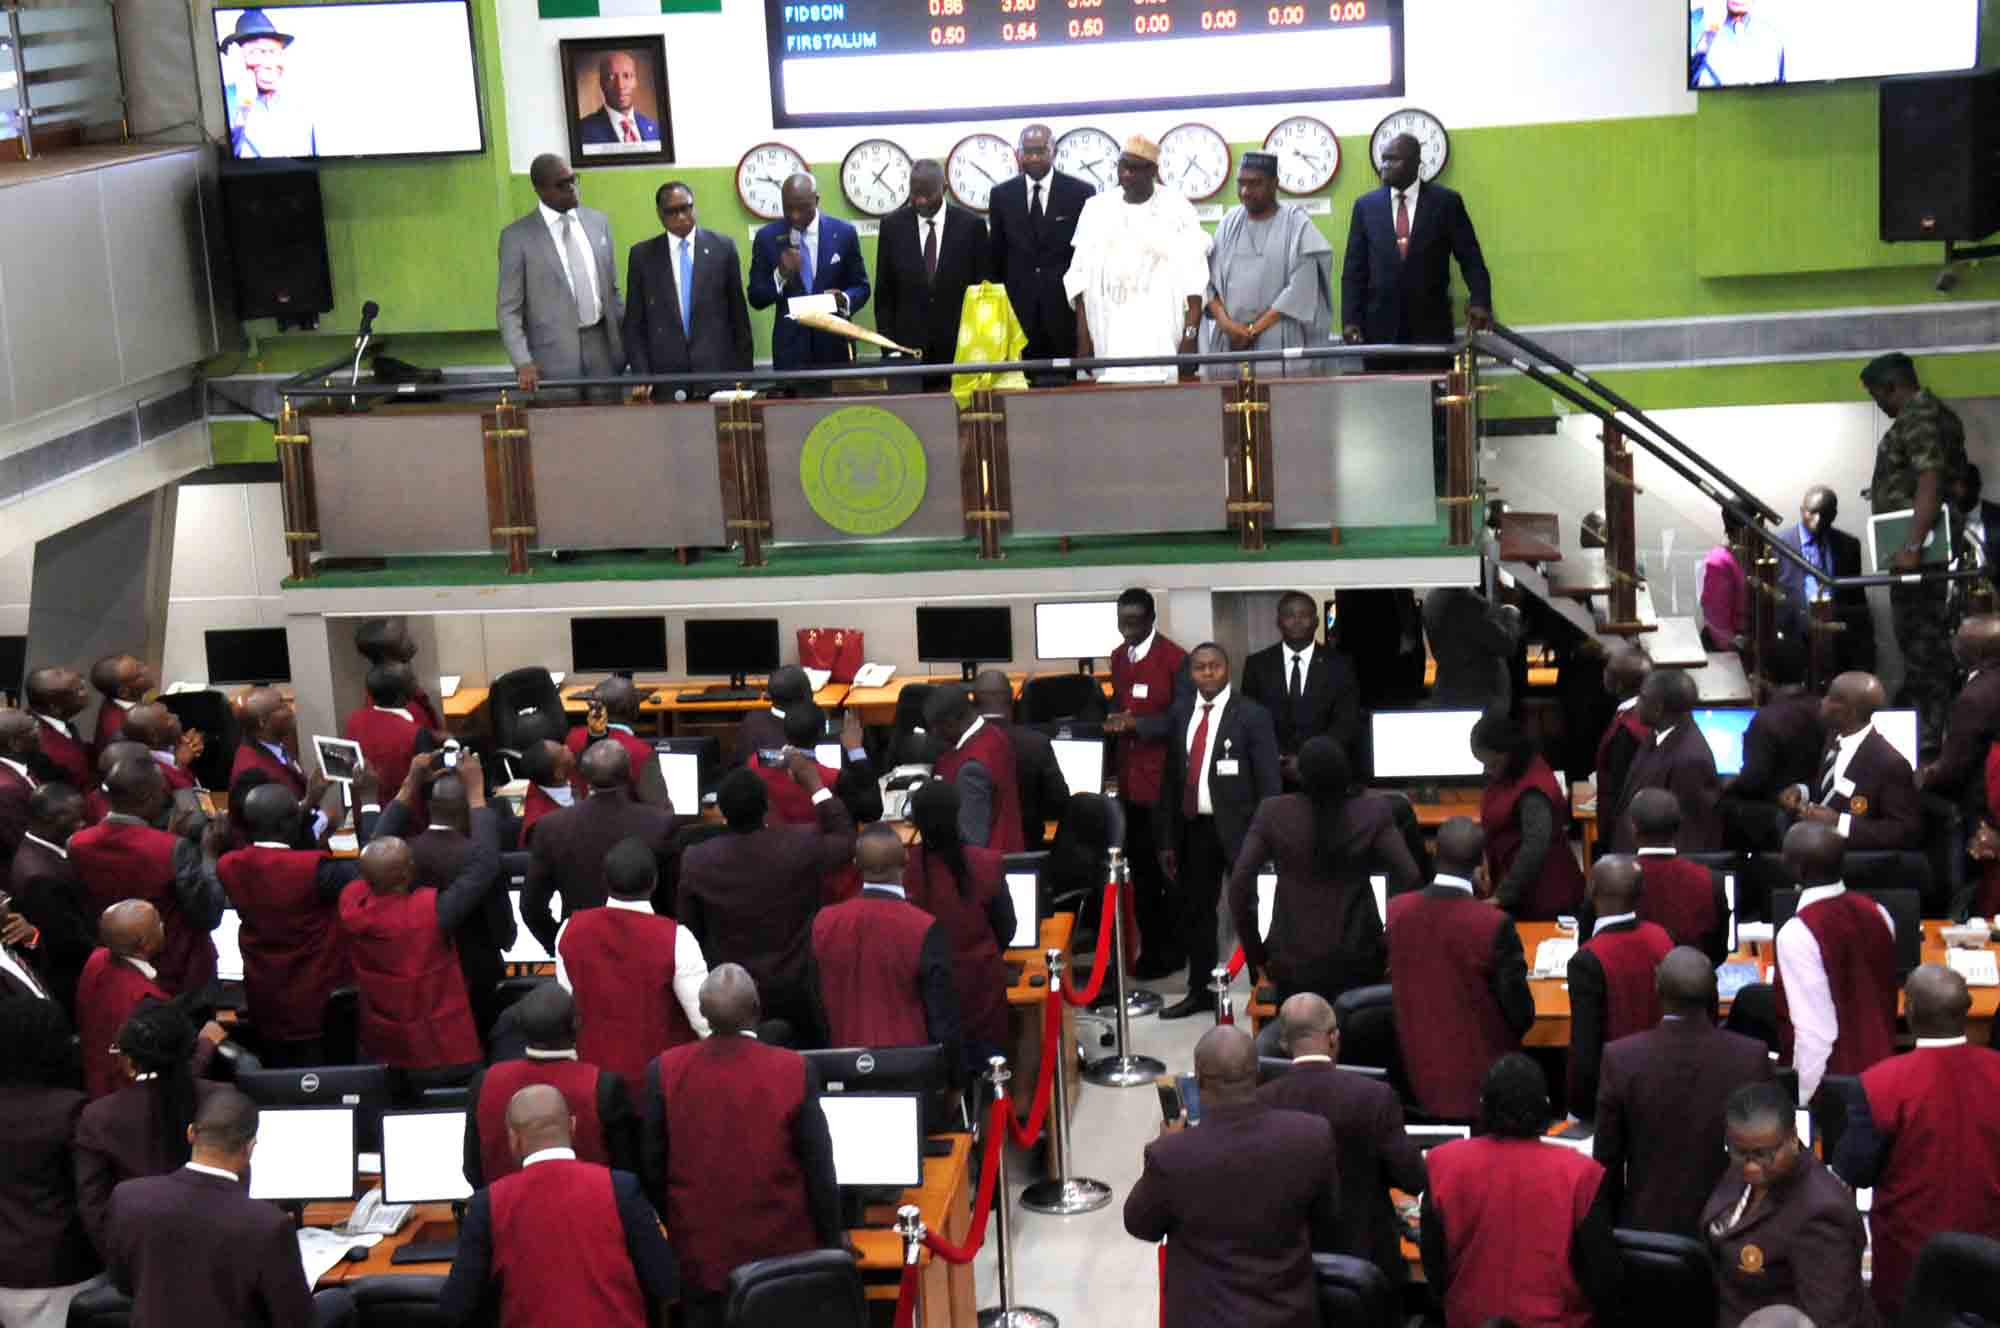 efficiency of the nigerian stock exchange The stock exchange market in nigeria the stock exchange market in nigeria-as history puts it, the stock exchange market seen as an apex institutions charged with the responsibility of monitoring the securities trading activities of the non-bank financial institutions in nigerian was first incorporated an 15 th september, 1960 as lagers stock exchange with the aim of a non-profit organization.